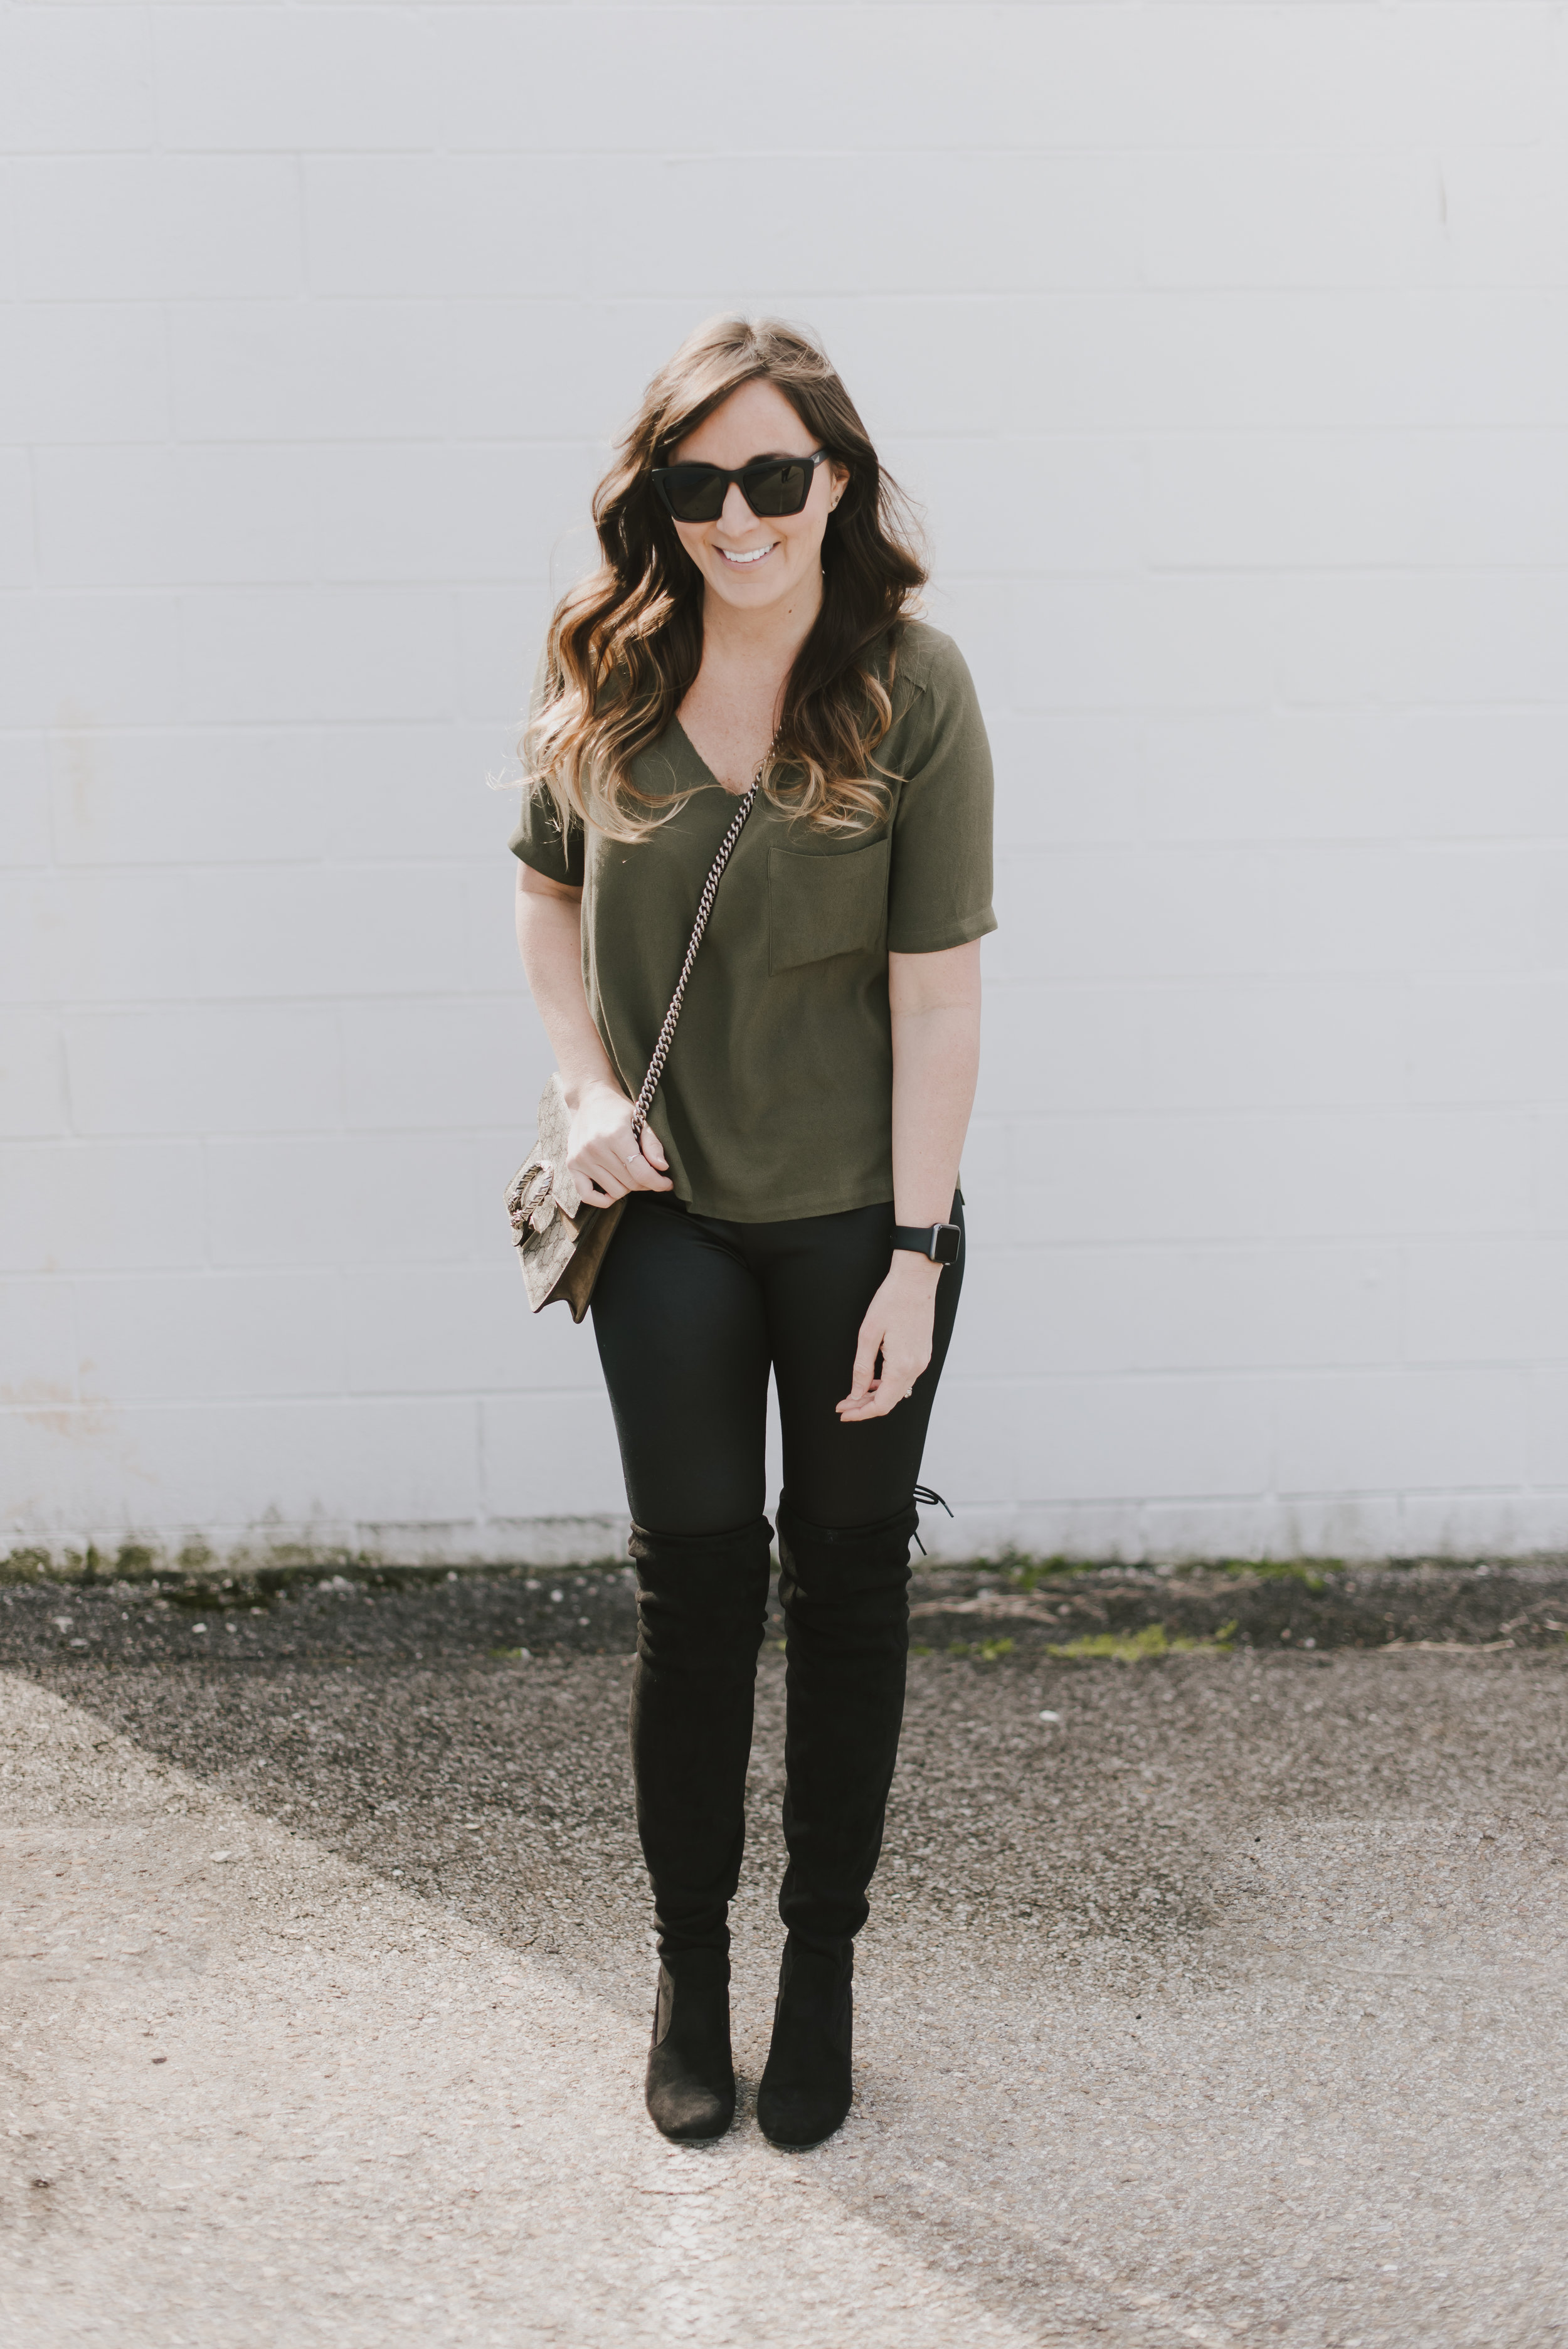 details:  belair paris top  // target faux leather leggings (sold only in stores, not online)similar  here //  black over the knee boots //  prism london sunglasses //  gucci dionysus bag